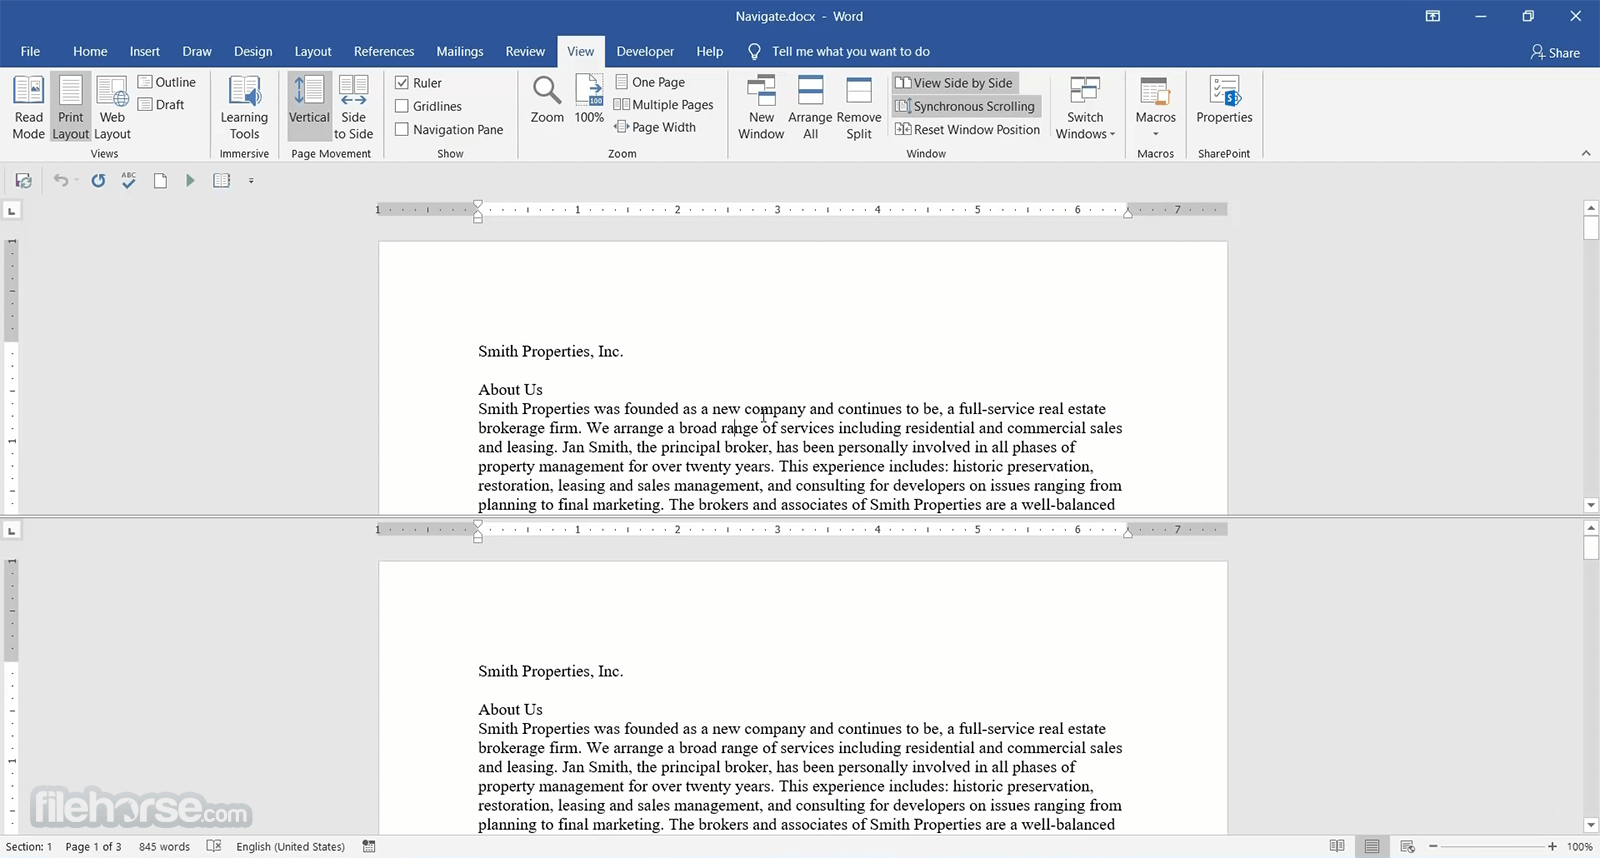 Microsoft Word 2016 Screenshot 2